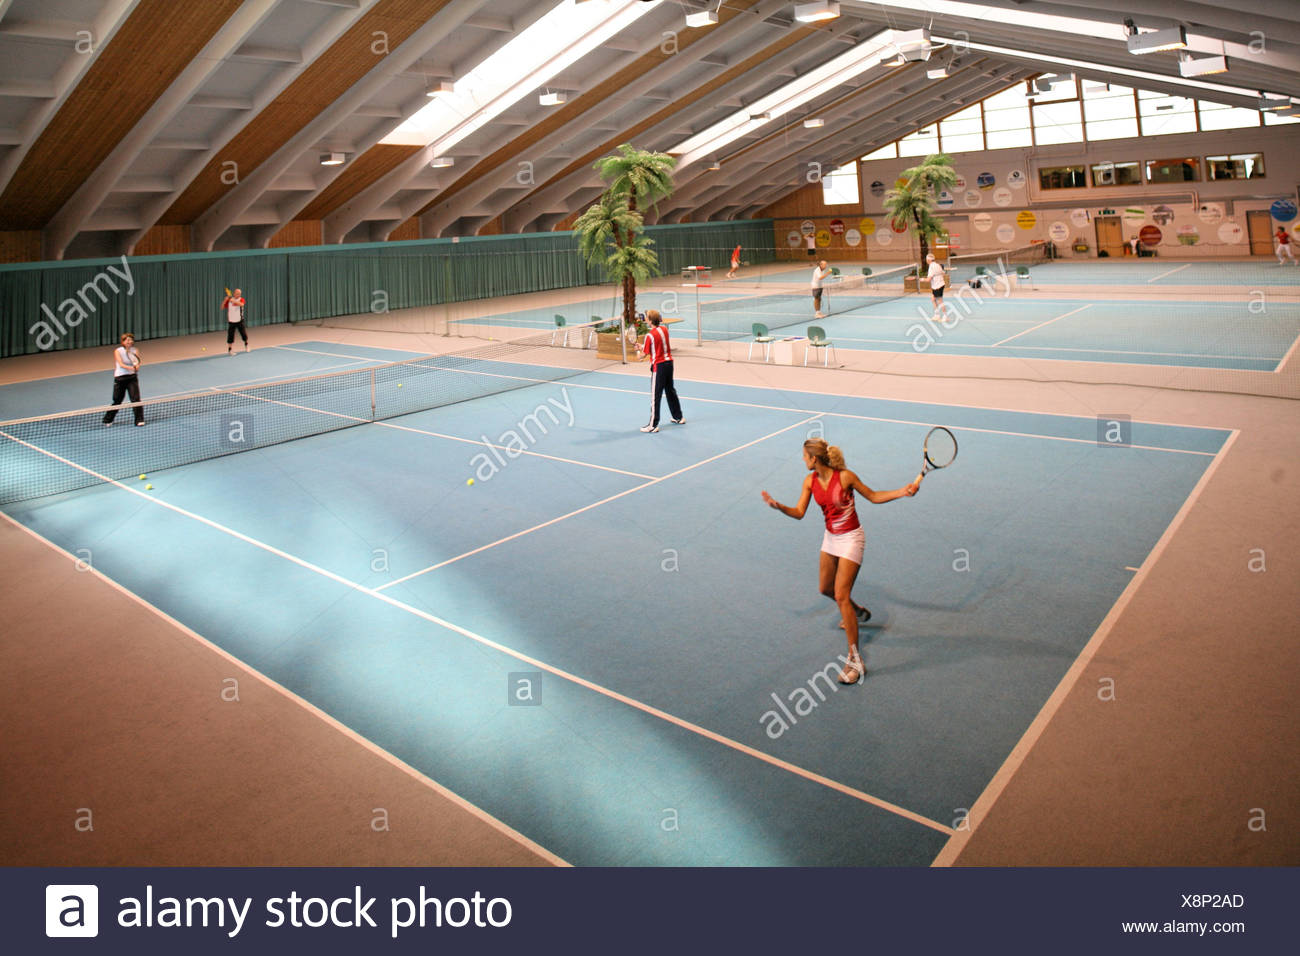 covered court Inside course lesson training tennis hall Halle sports leisure sport person tennis fields pl - Stock Image